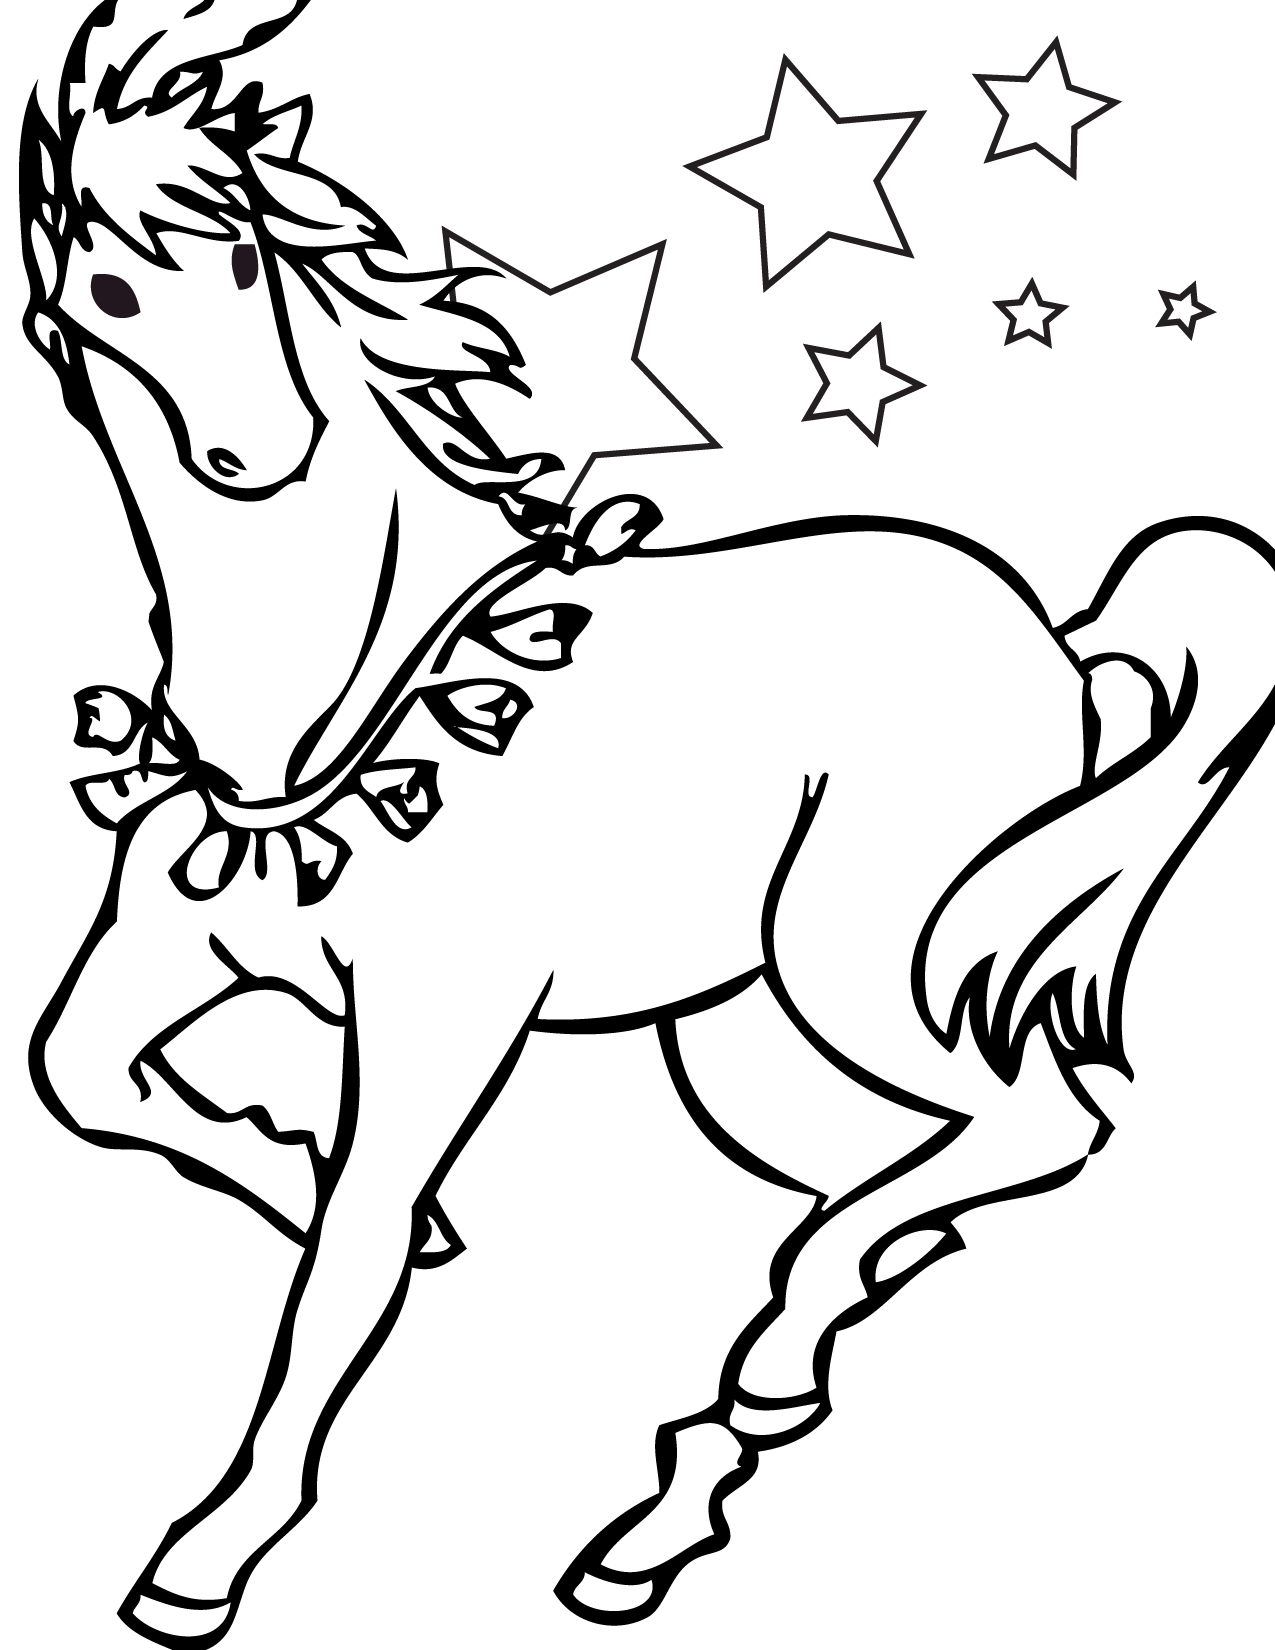 Free coloring pictures of horses - Free Coloring Pages Of Horses